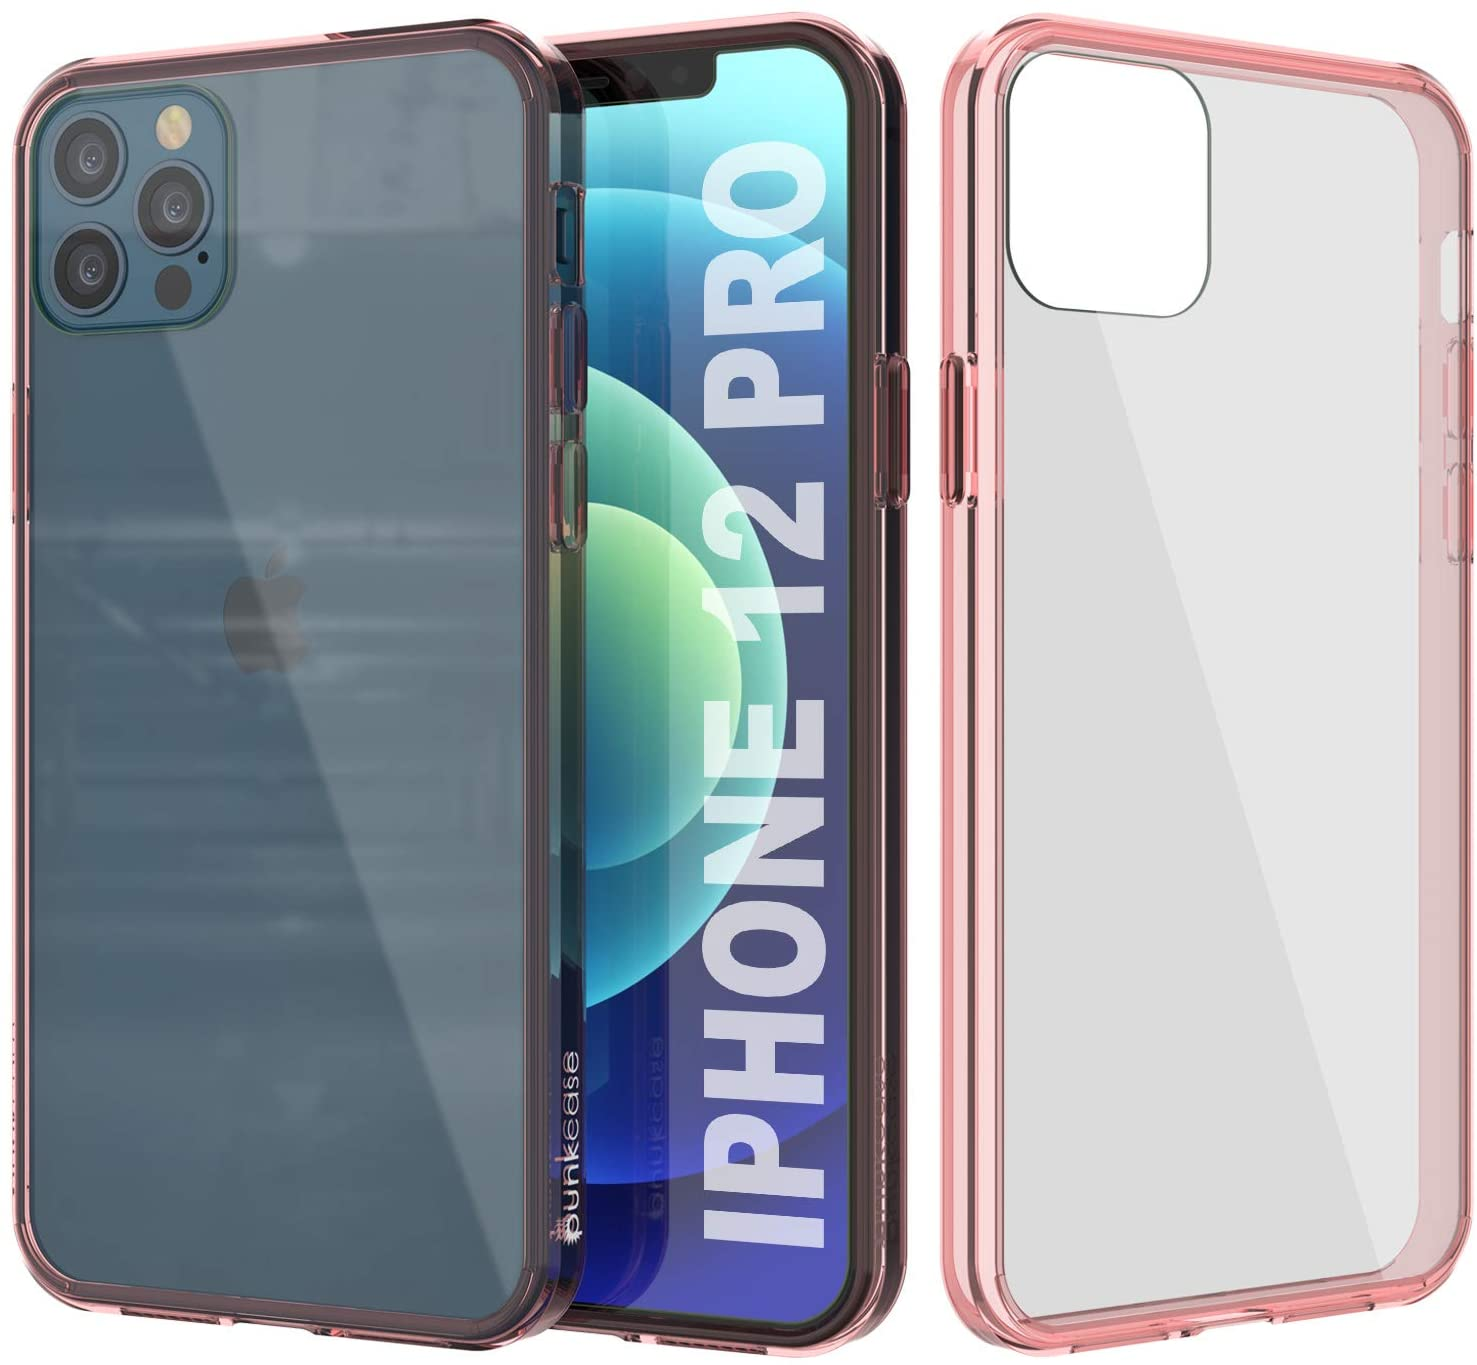 iPhone 12 Pro Case Punkcase® LUCID 2.0 Crystal Pink Series w/ SHIELD Screen Protector | Ultra Fit